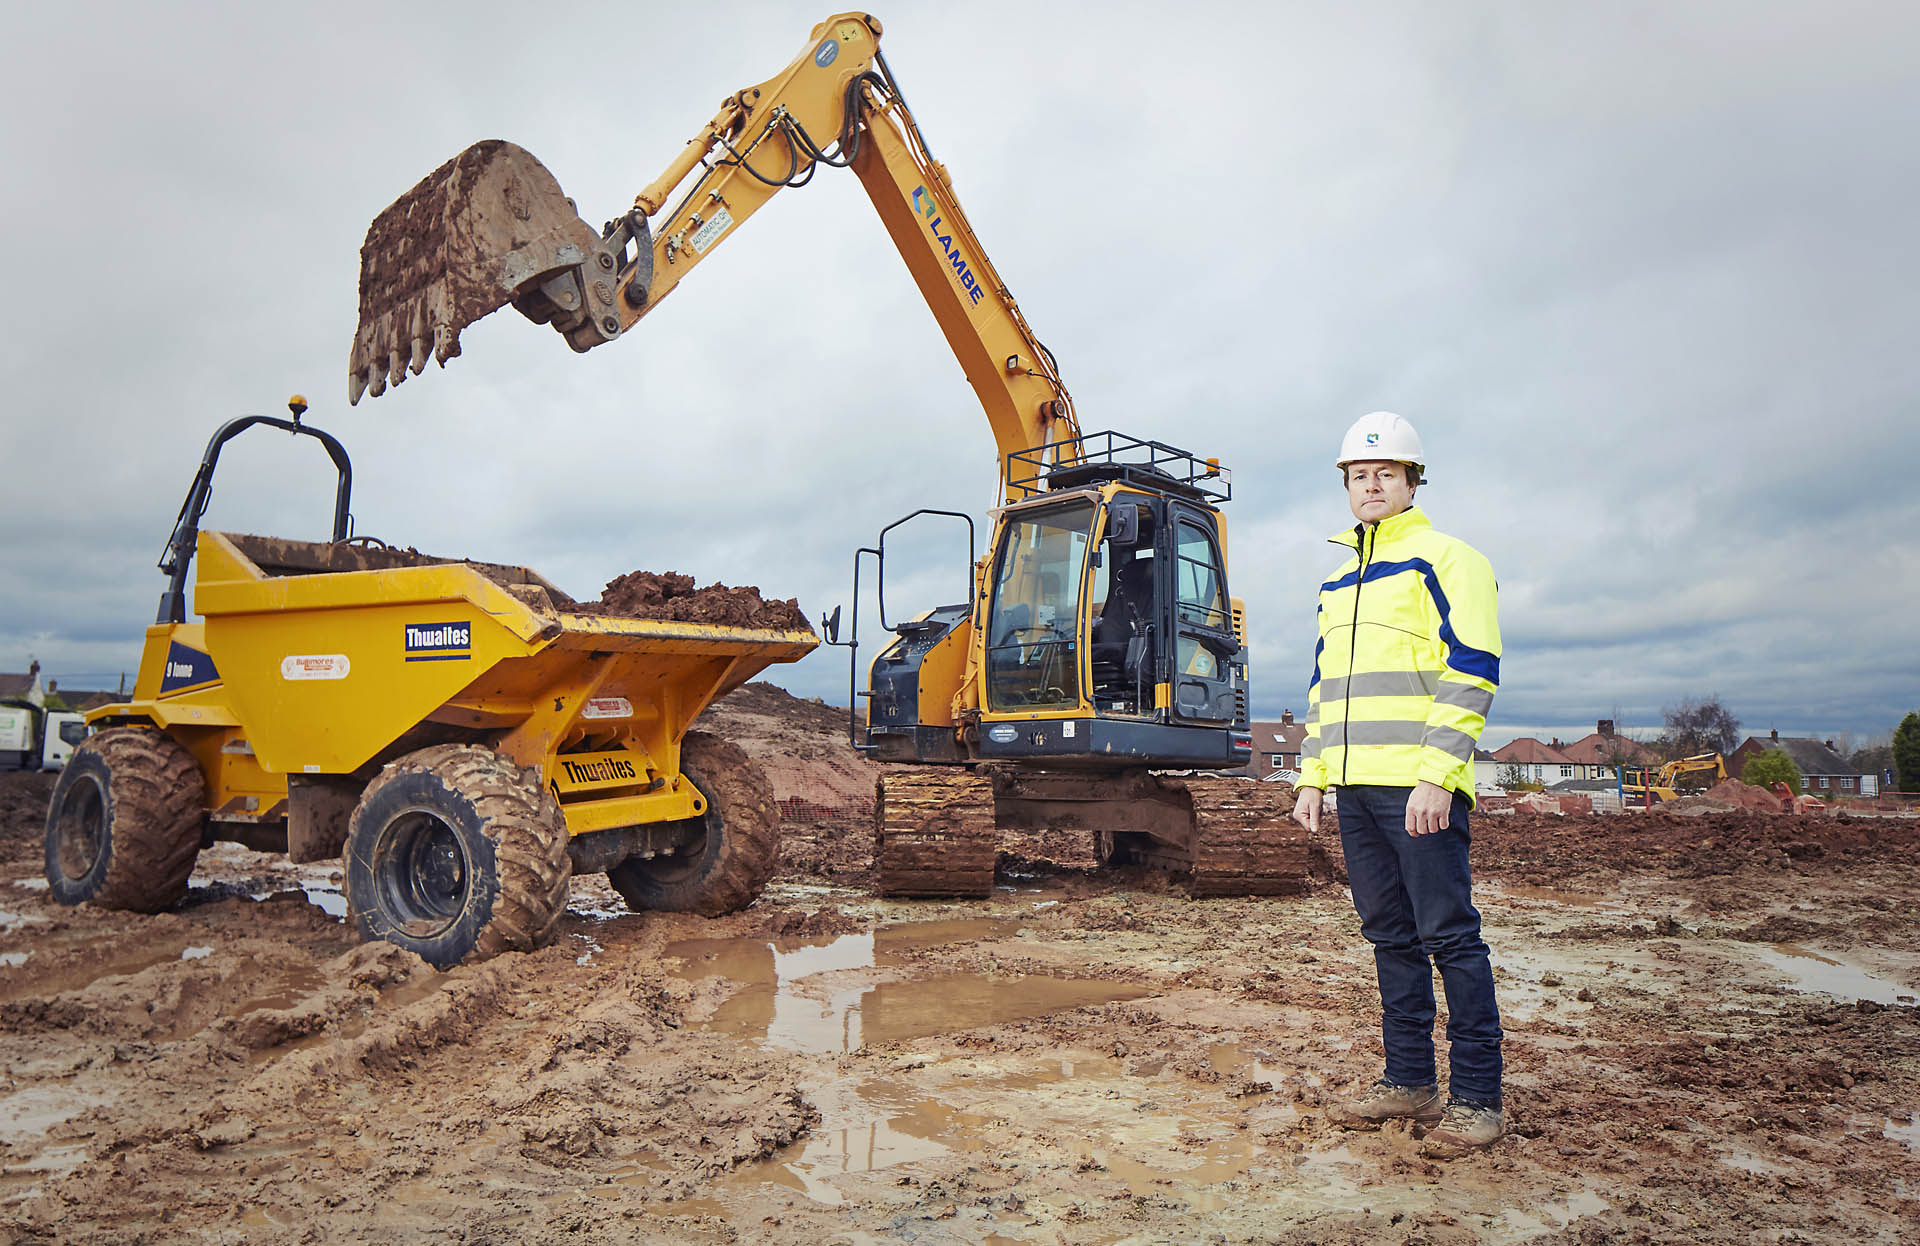 idp, ian davies, iandaviesphoto, photographer birmingham, commercial photographer birmingham, portrait photographer birmingham, construction, industrial photographer birmingham, event photographer birmingham, M.Lambe Construction, birmingham,